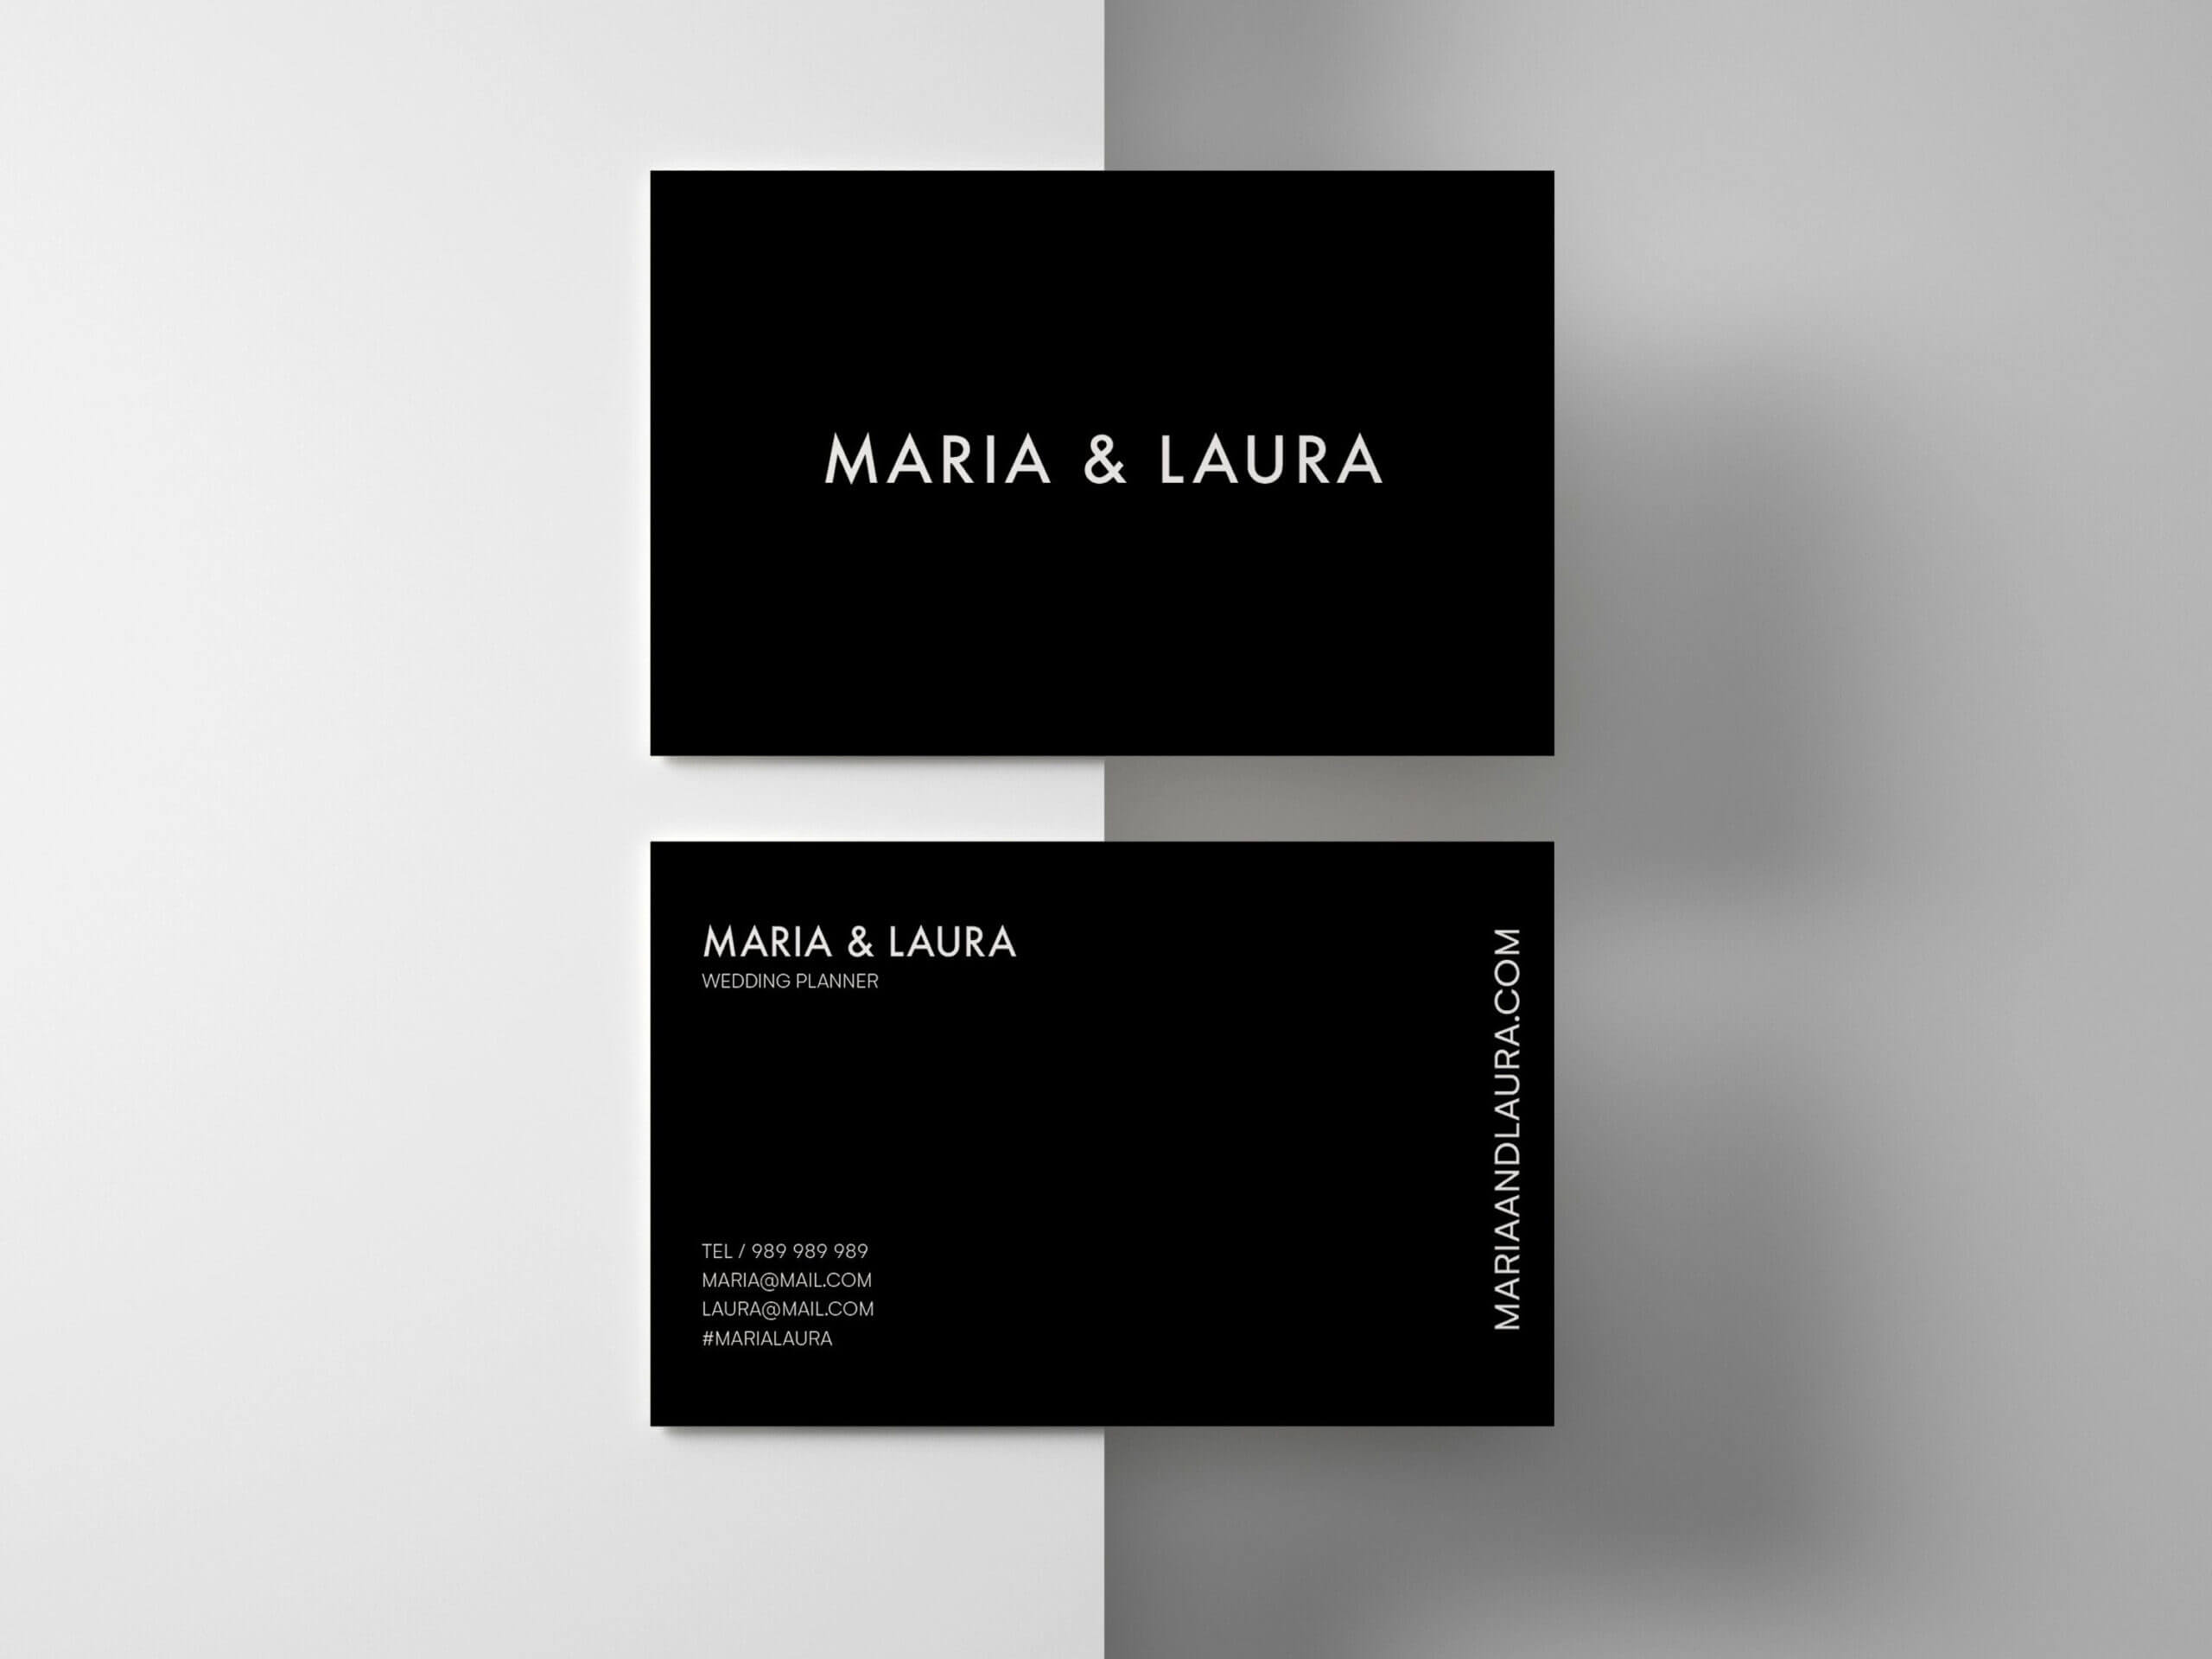 Business Cards, Calling Cards, Business Card, Templates With Regard To Template For Calling Card